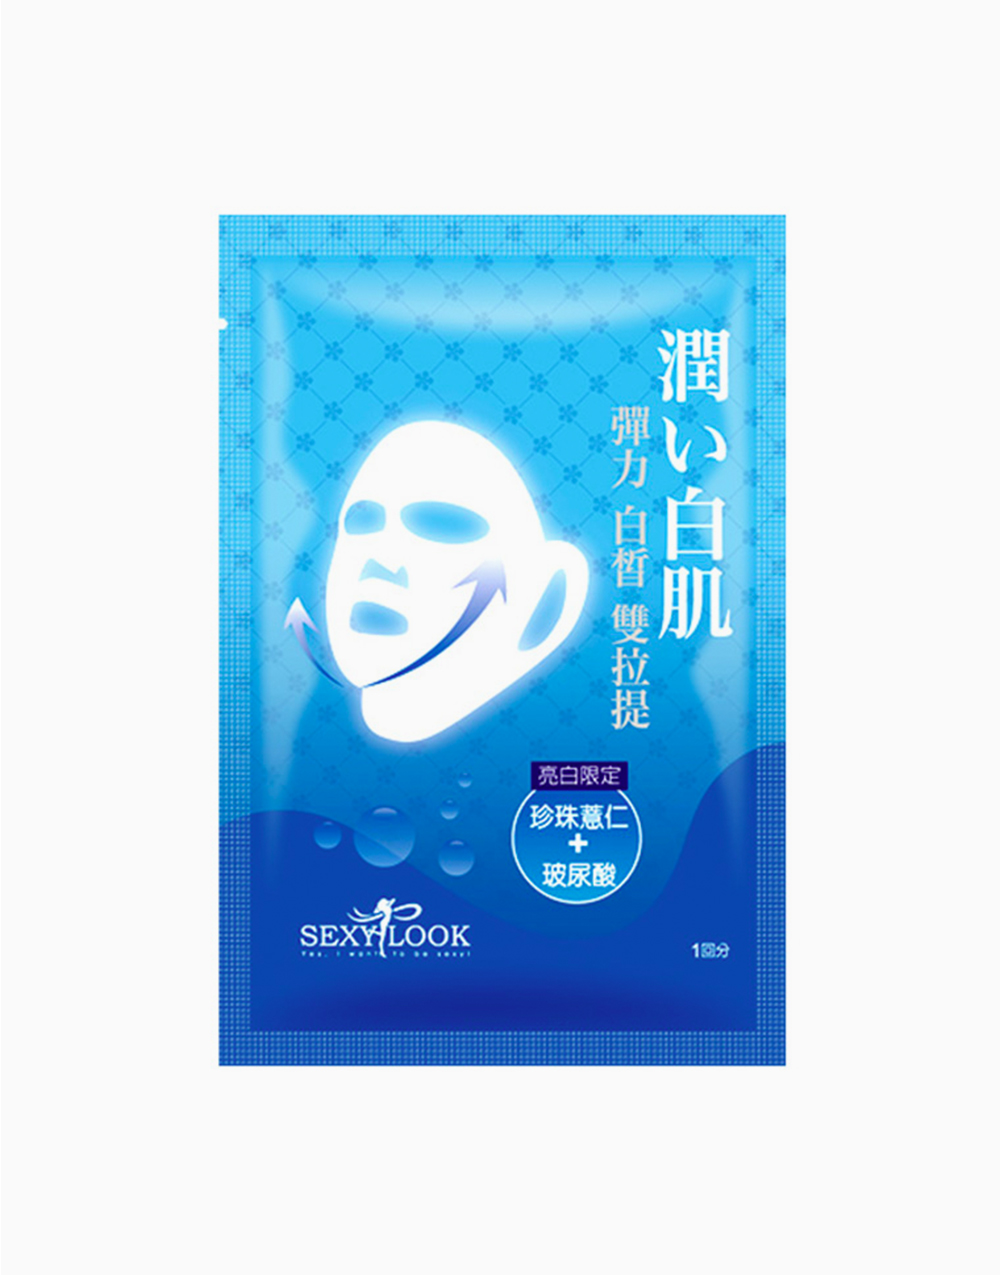 Ultra Whitening Duo Lifting Mask by SEXYLOOK